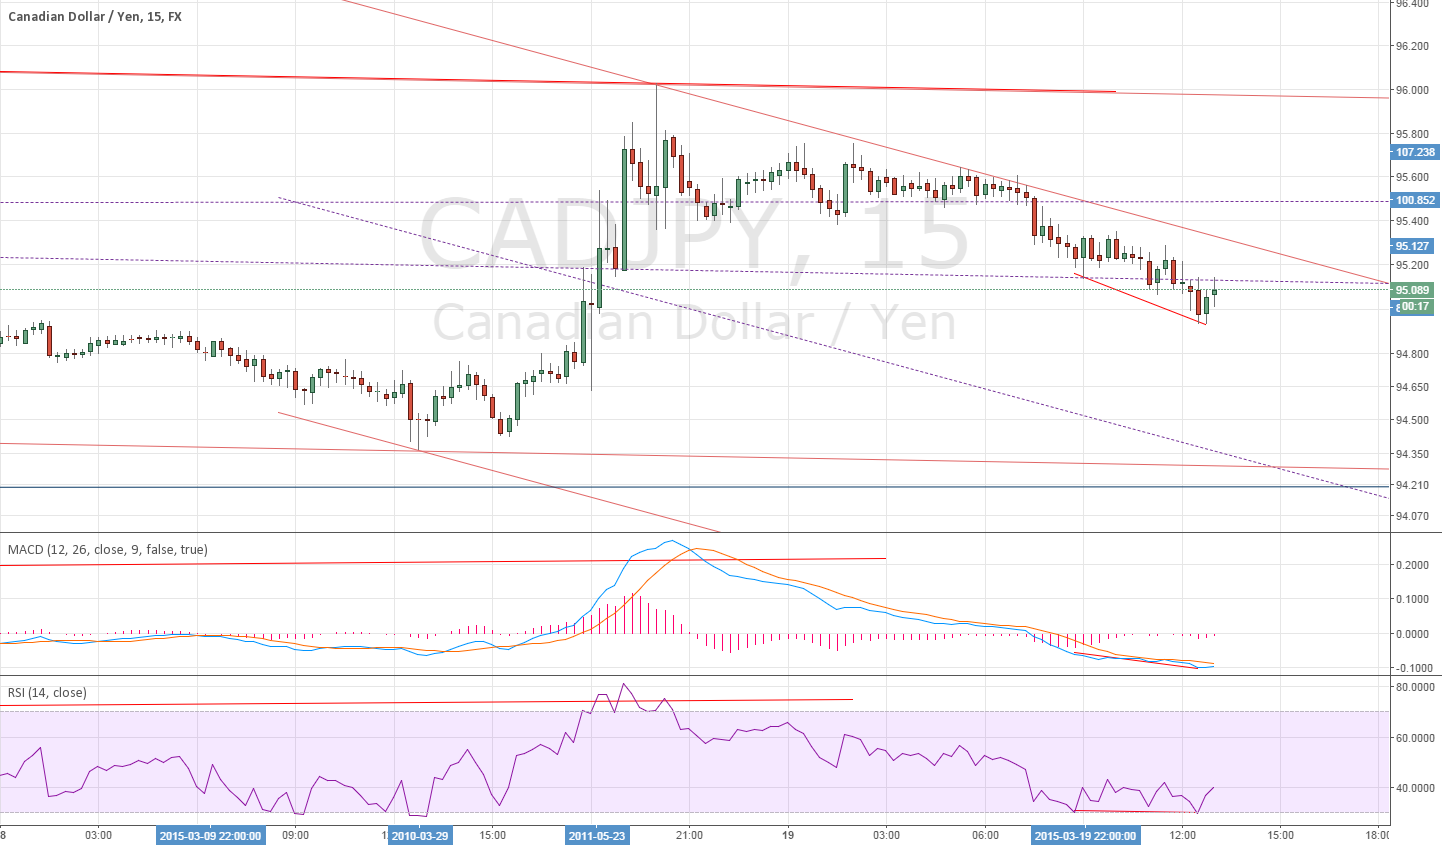 15 Min for CADJPY divergence ~